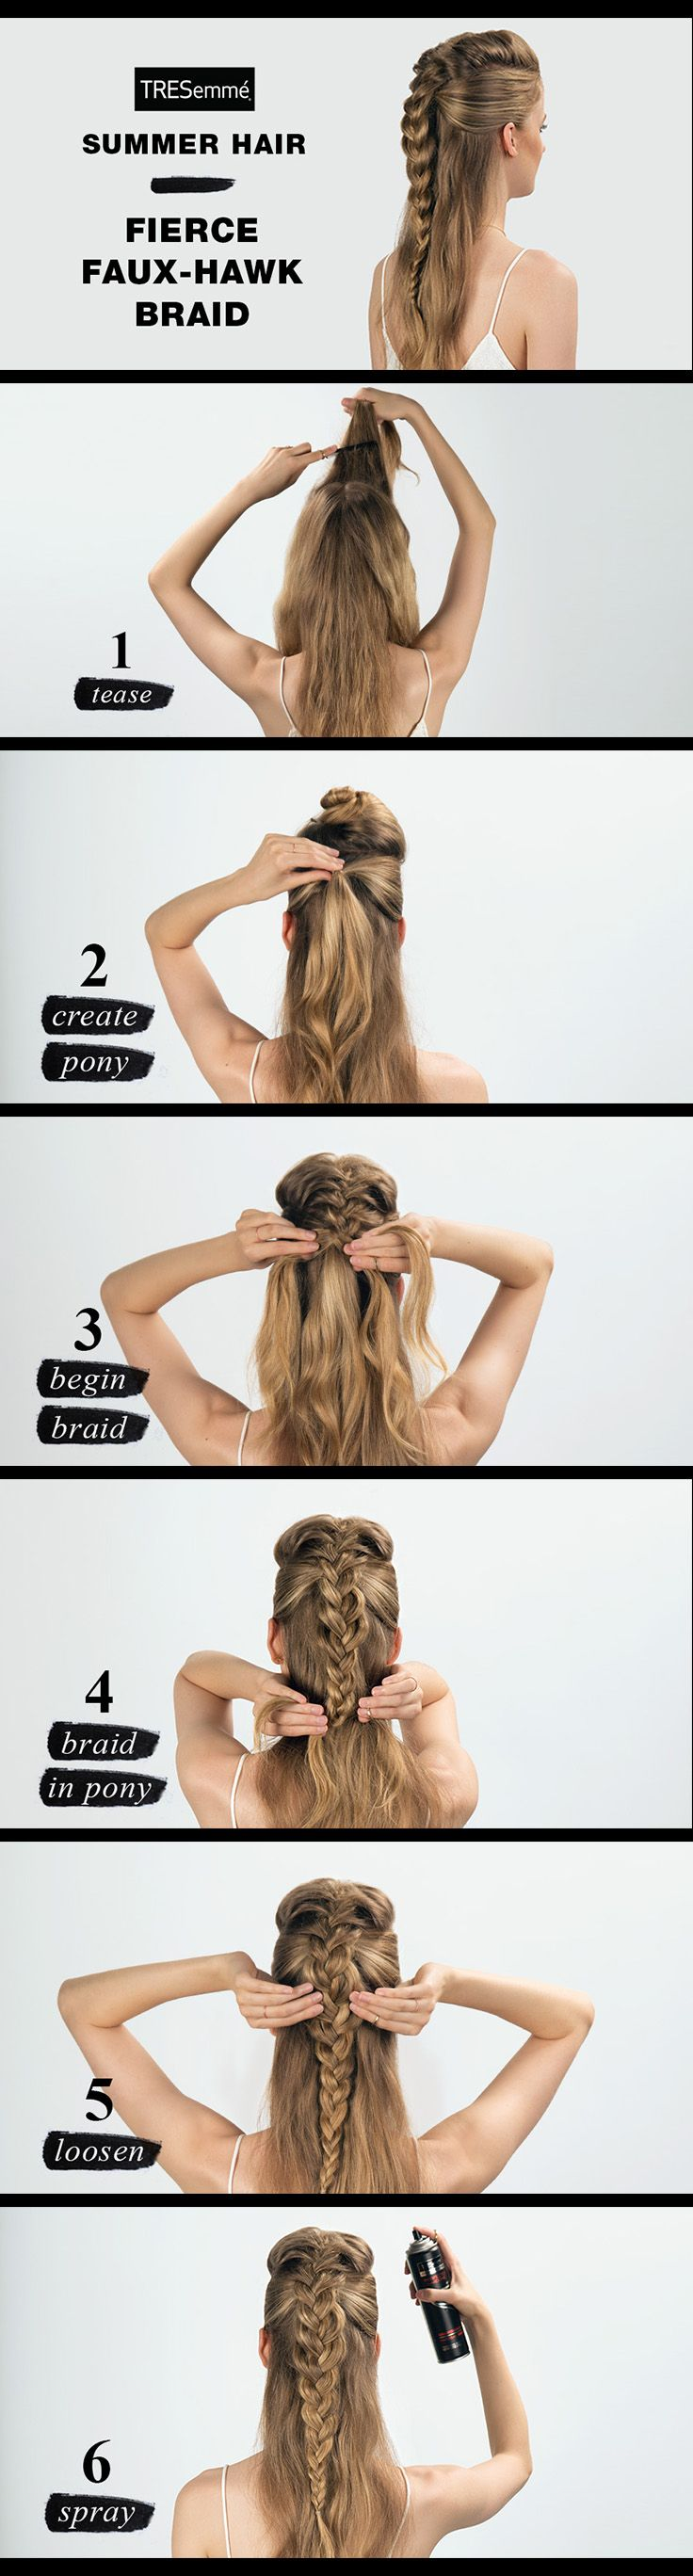 The boardwalk is your catwalk, so go bold with a Faux Hawk Braid. 1. Spray TRES Perfectly (un)Done Sea Salt Spray. Curl with flat iron & finger comb. Separate top half of hair into 3 pieces & tease middle piece. 2. Clip middle piece & pull 2 side pieces into a pony. 3. Unclip & begin Dutch braid along center of head toward nape of neck. 4. When braid meets pony, incorporate pony into braid. 5. Secure braid & gently tug edges to loosen. 6. Finish with Perfectly (un)Done Ultra Brushable…